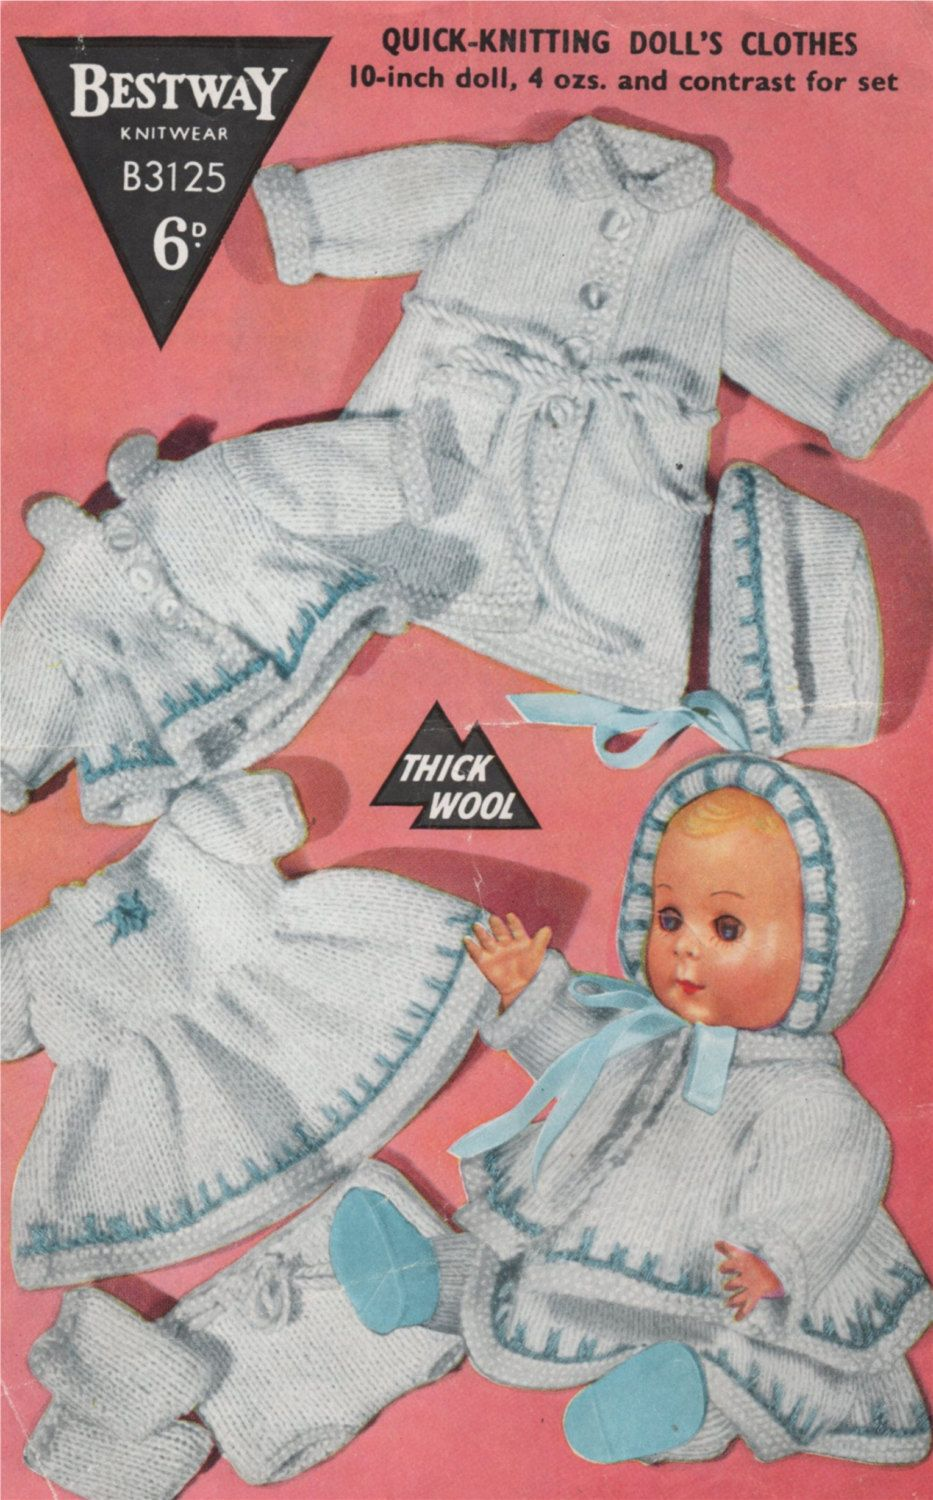 Dolls Clothes Knitting Pattern Pdf For 10 Inch Baby Doll Dolls Wardrobe Baby Reborn Dolls Vintage Knitting Patterns For Dolls Download Knitting Dolls Clothes Vintage Knitting Patterns Doll Clothes